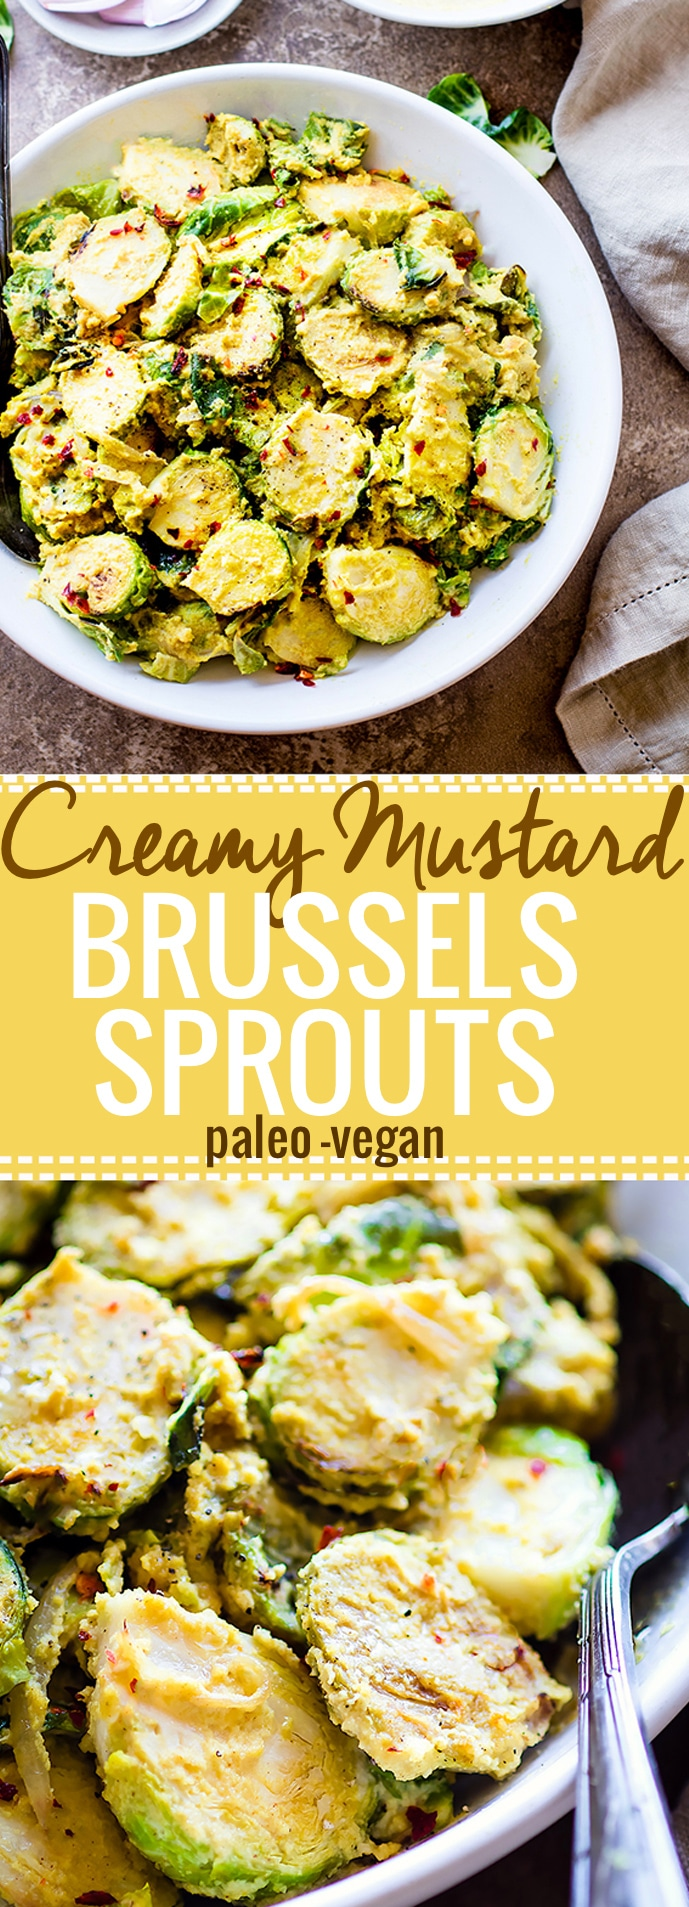 Pan Fried Creamy Mustard Brussels Sprouts Salad! A paleo Brussel Sprouts superfood salad dish tossed in a vegan creamy mustard sauce. Quick to make, packed with fiber, healthy fats, and nourishment! A healthy gluten free side dish to add to your table. @cottercrunch